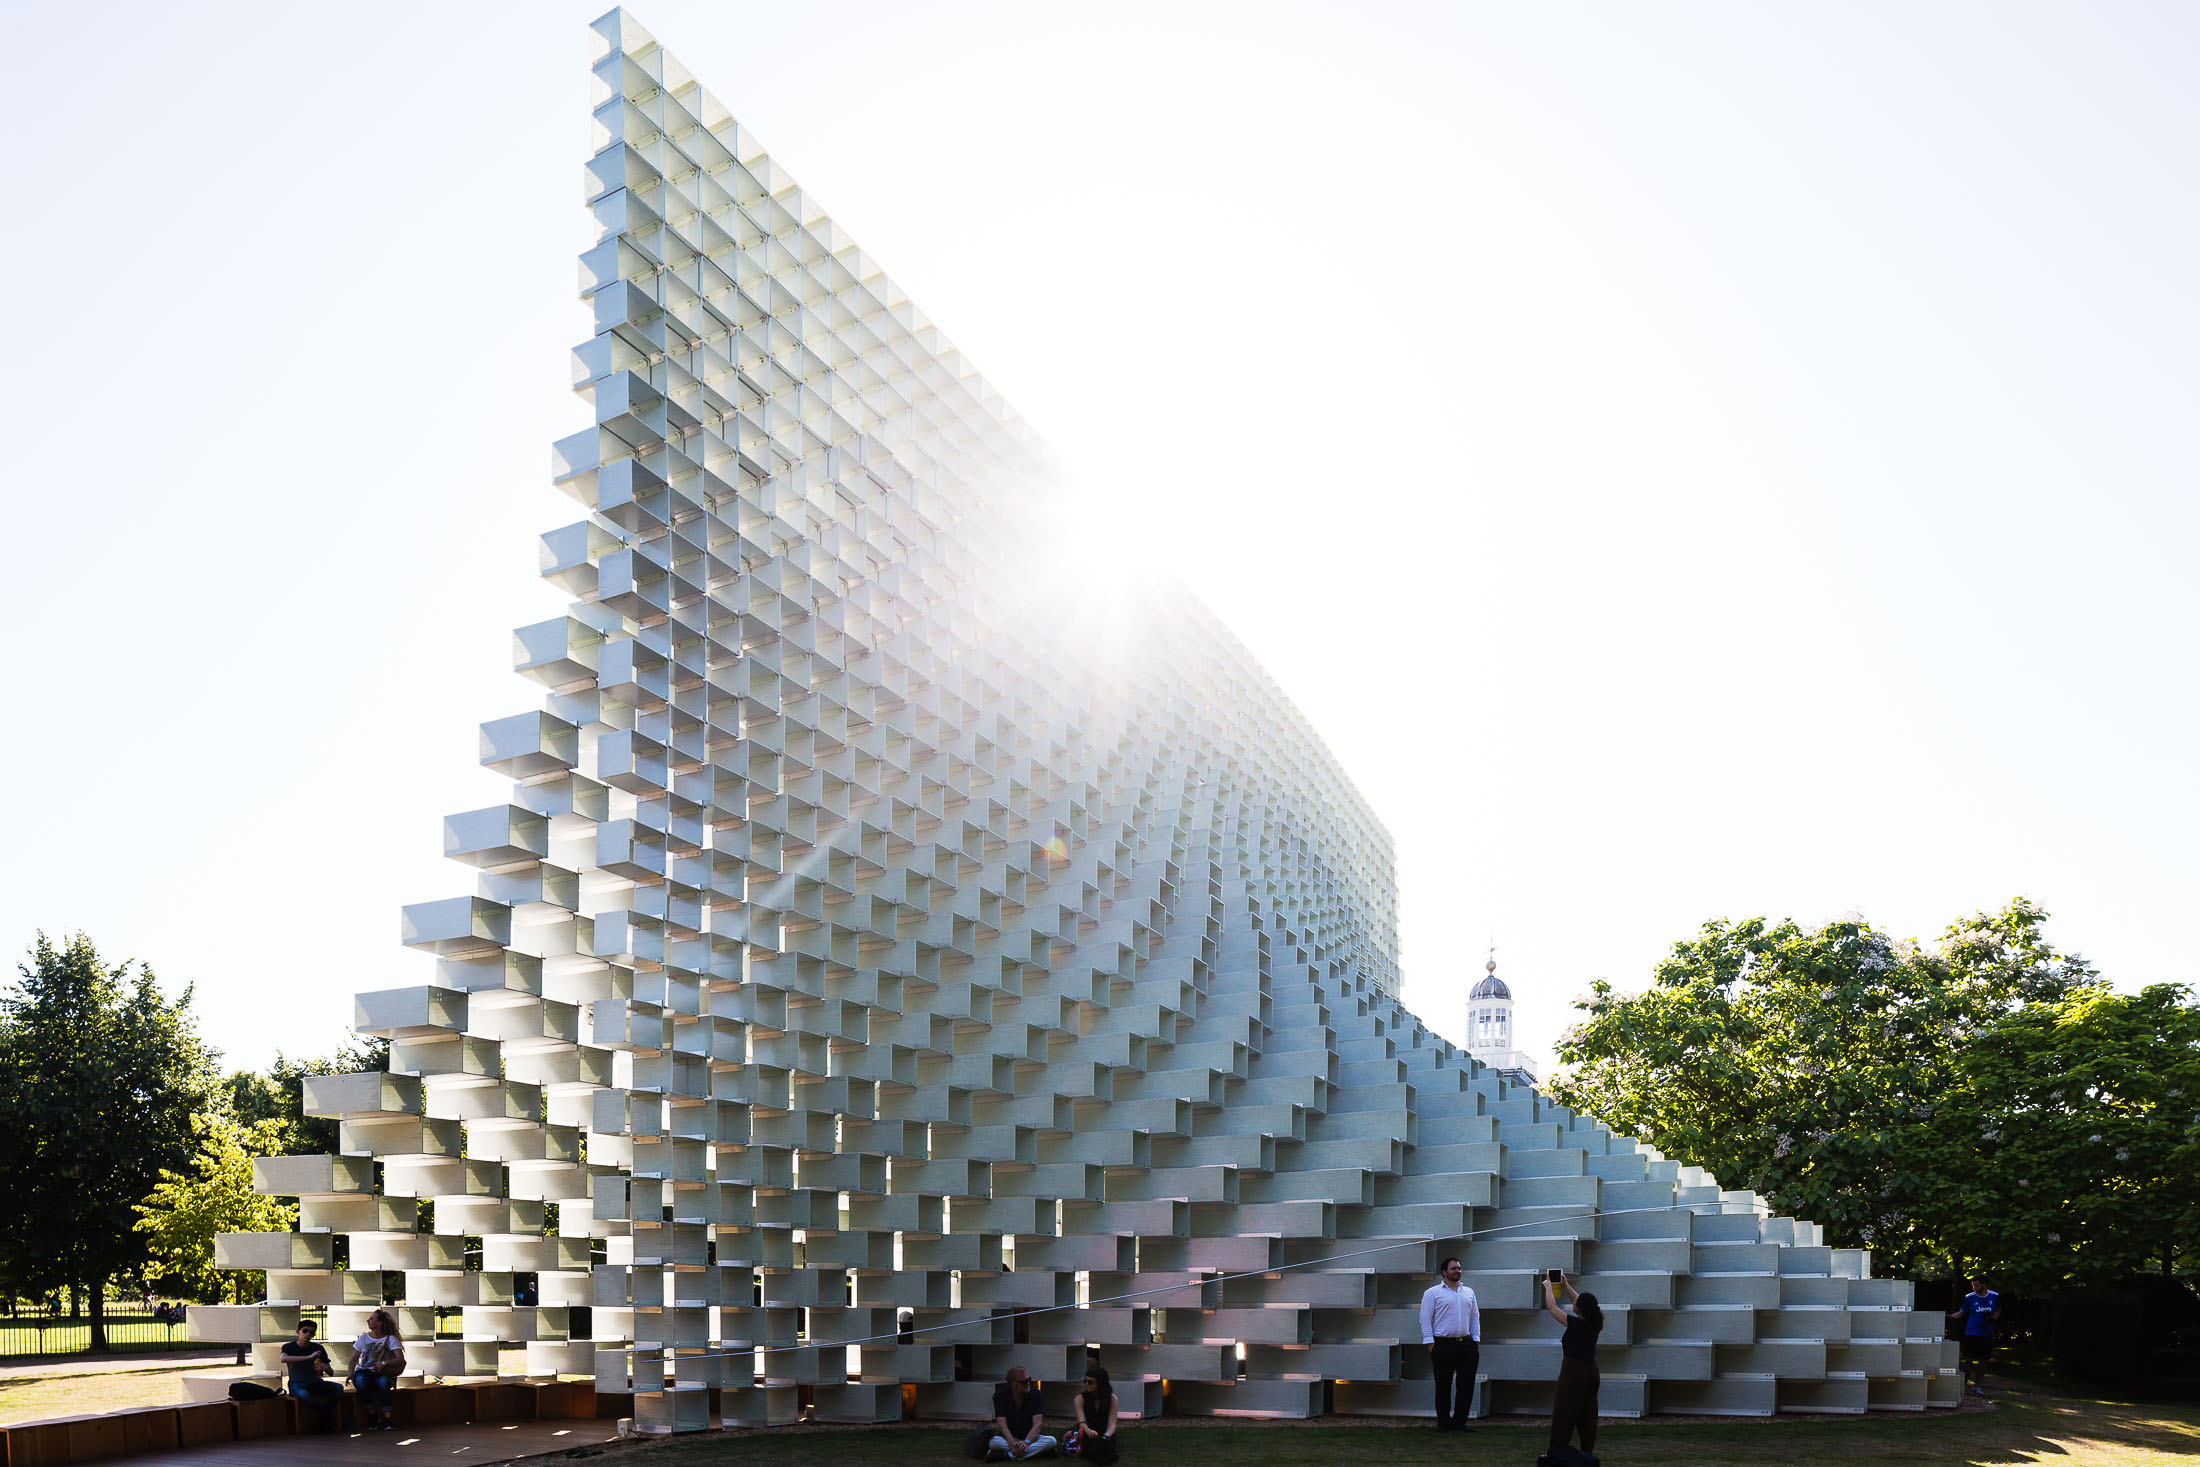 Serpentine Pavilion 2016 designed by Bjarke Ingels Group (BIG)